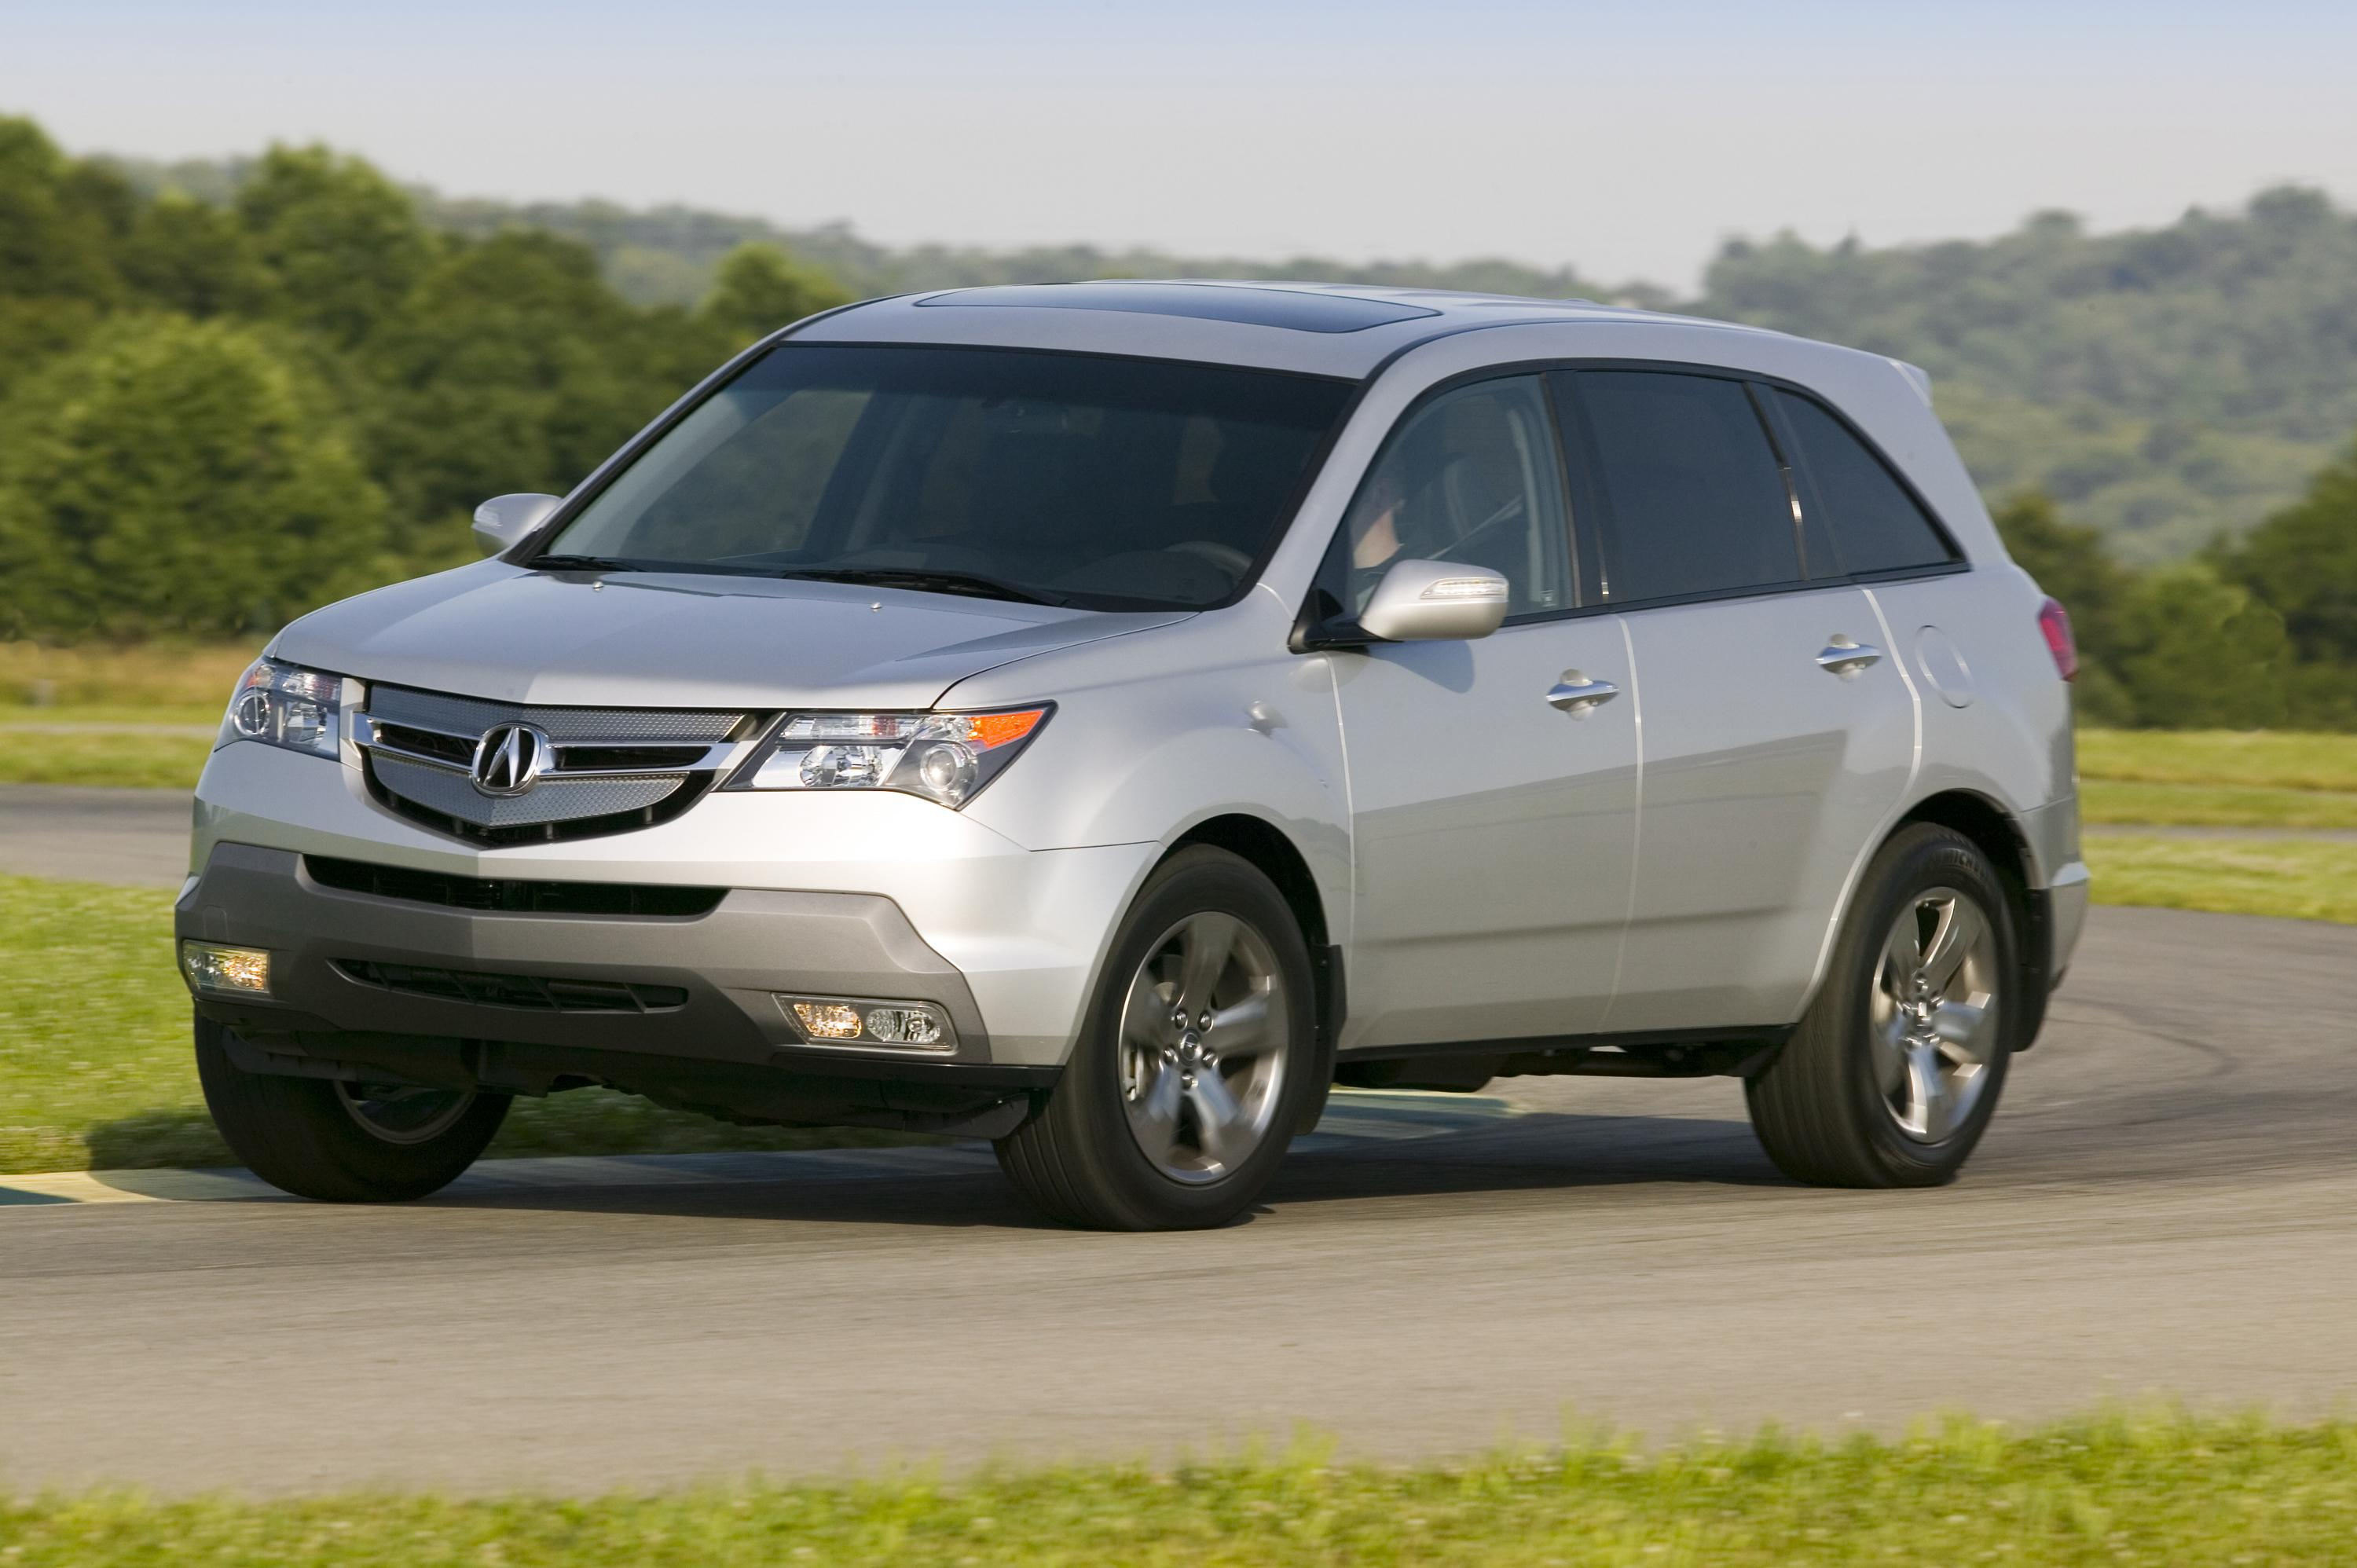 specs mdx acura pictures information wallpaper cost